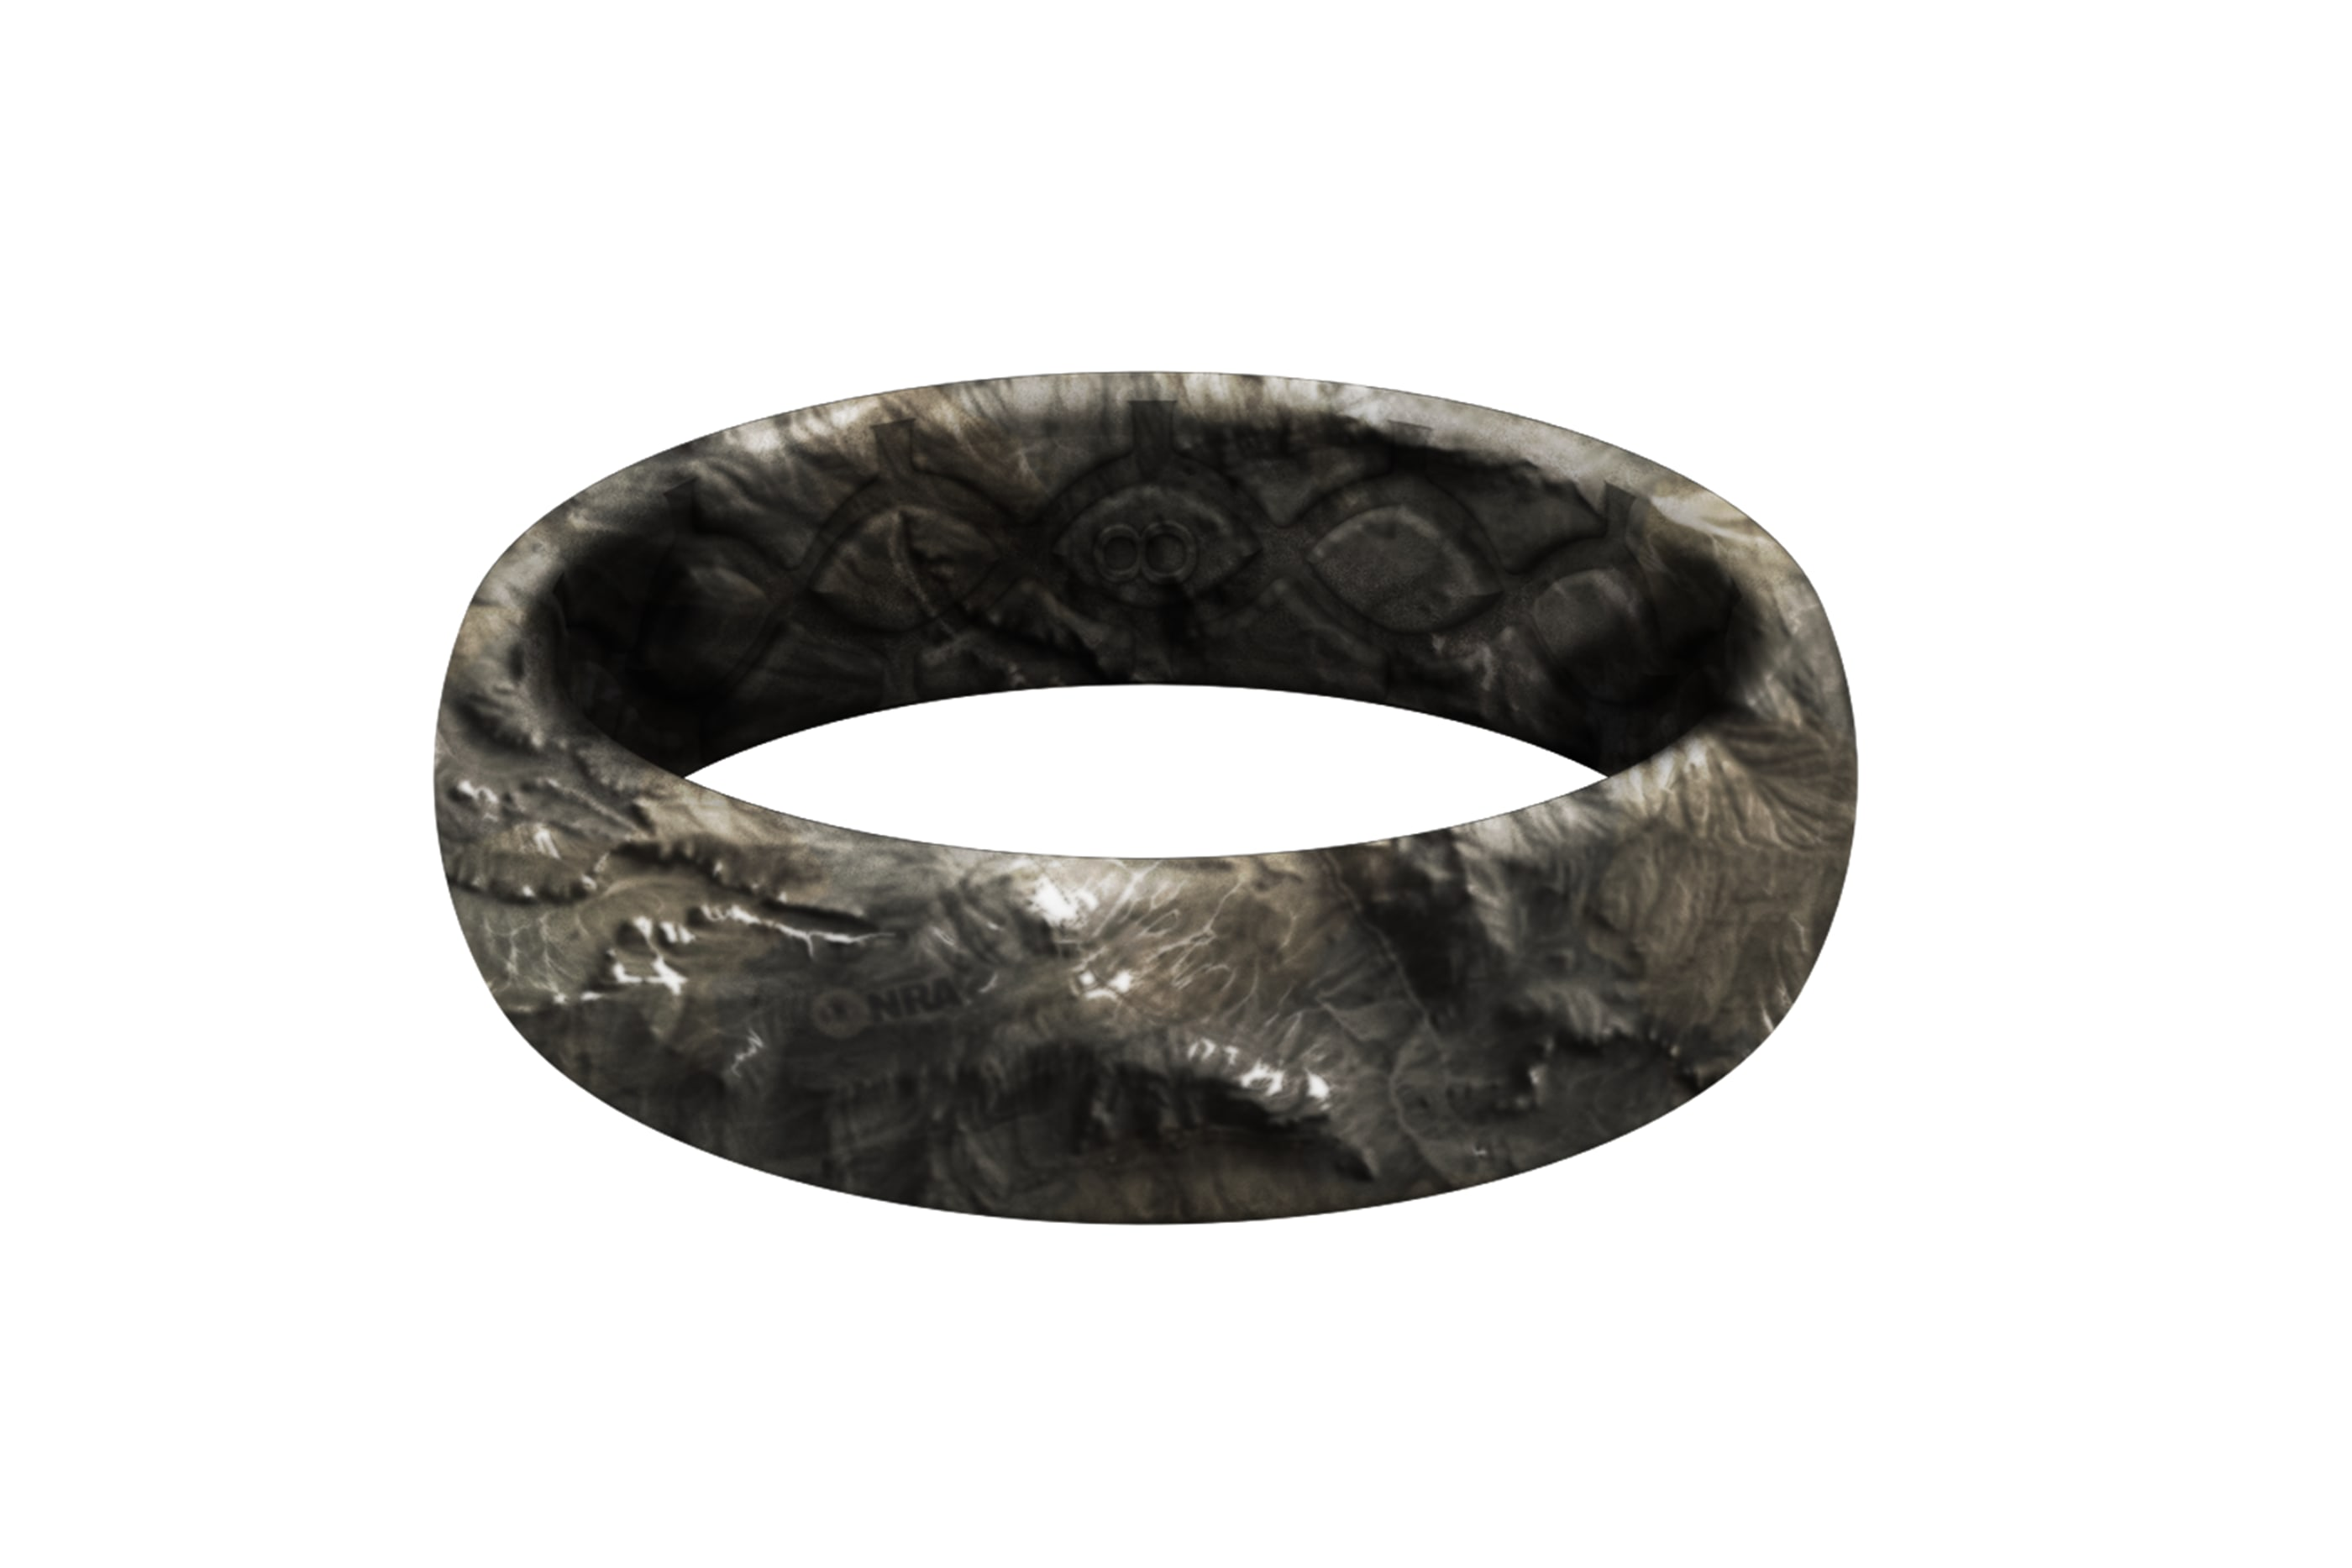 Mossy Oak NRA Overwatch Camo thin ring viewed front on